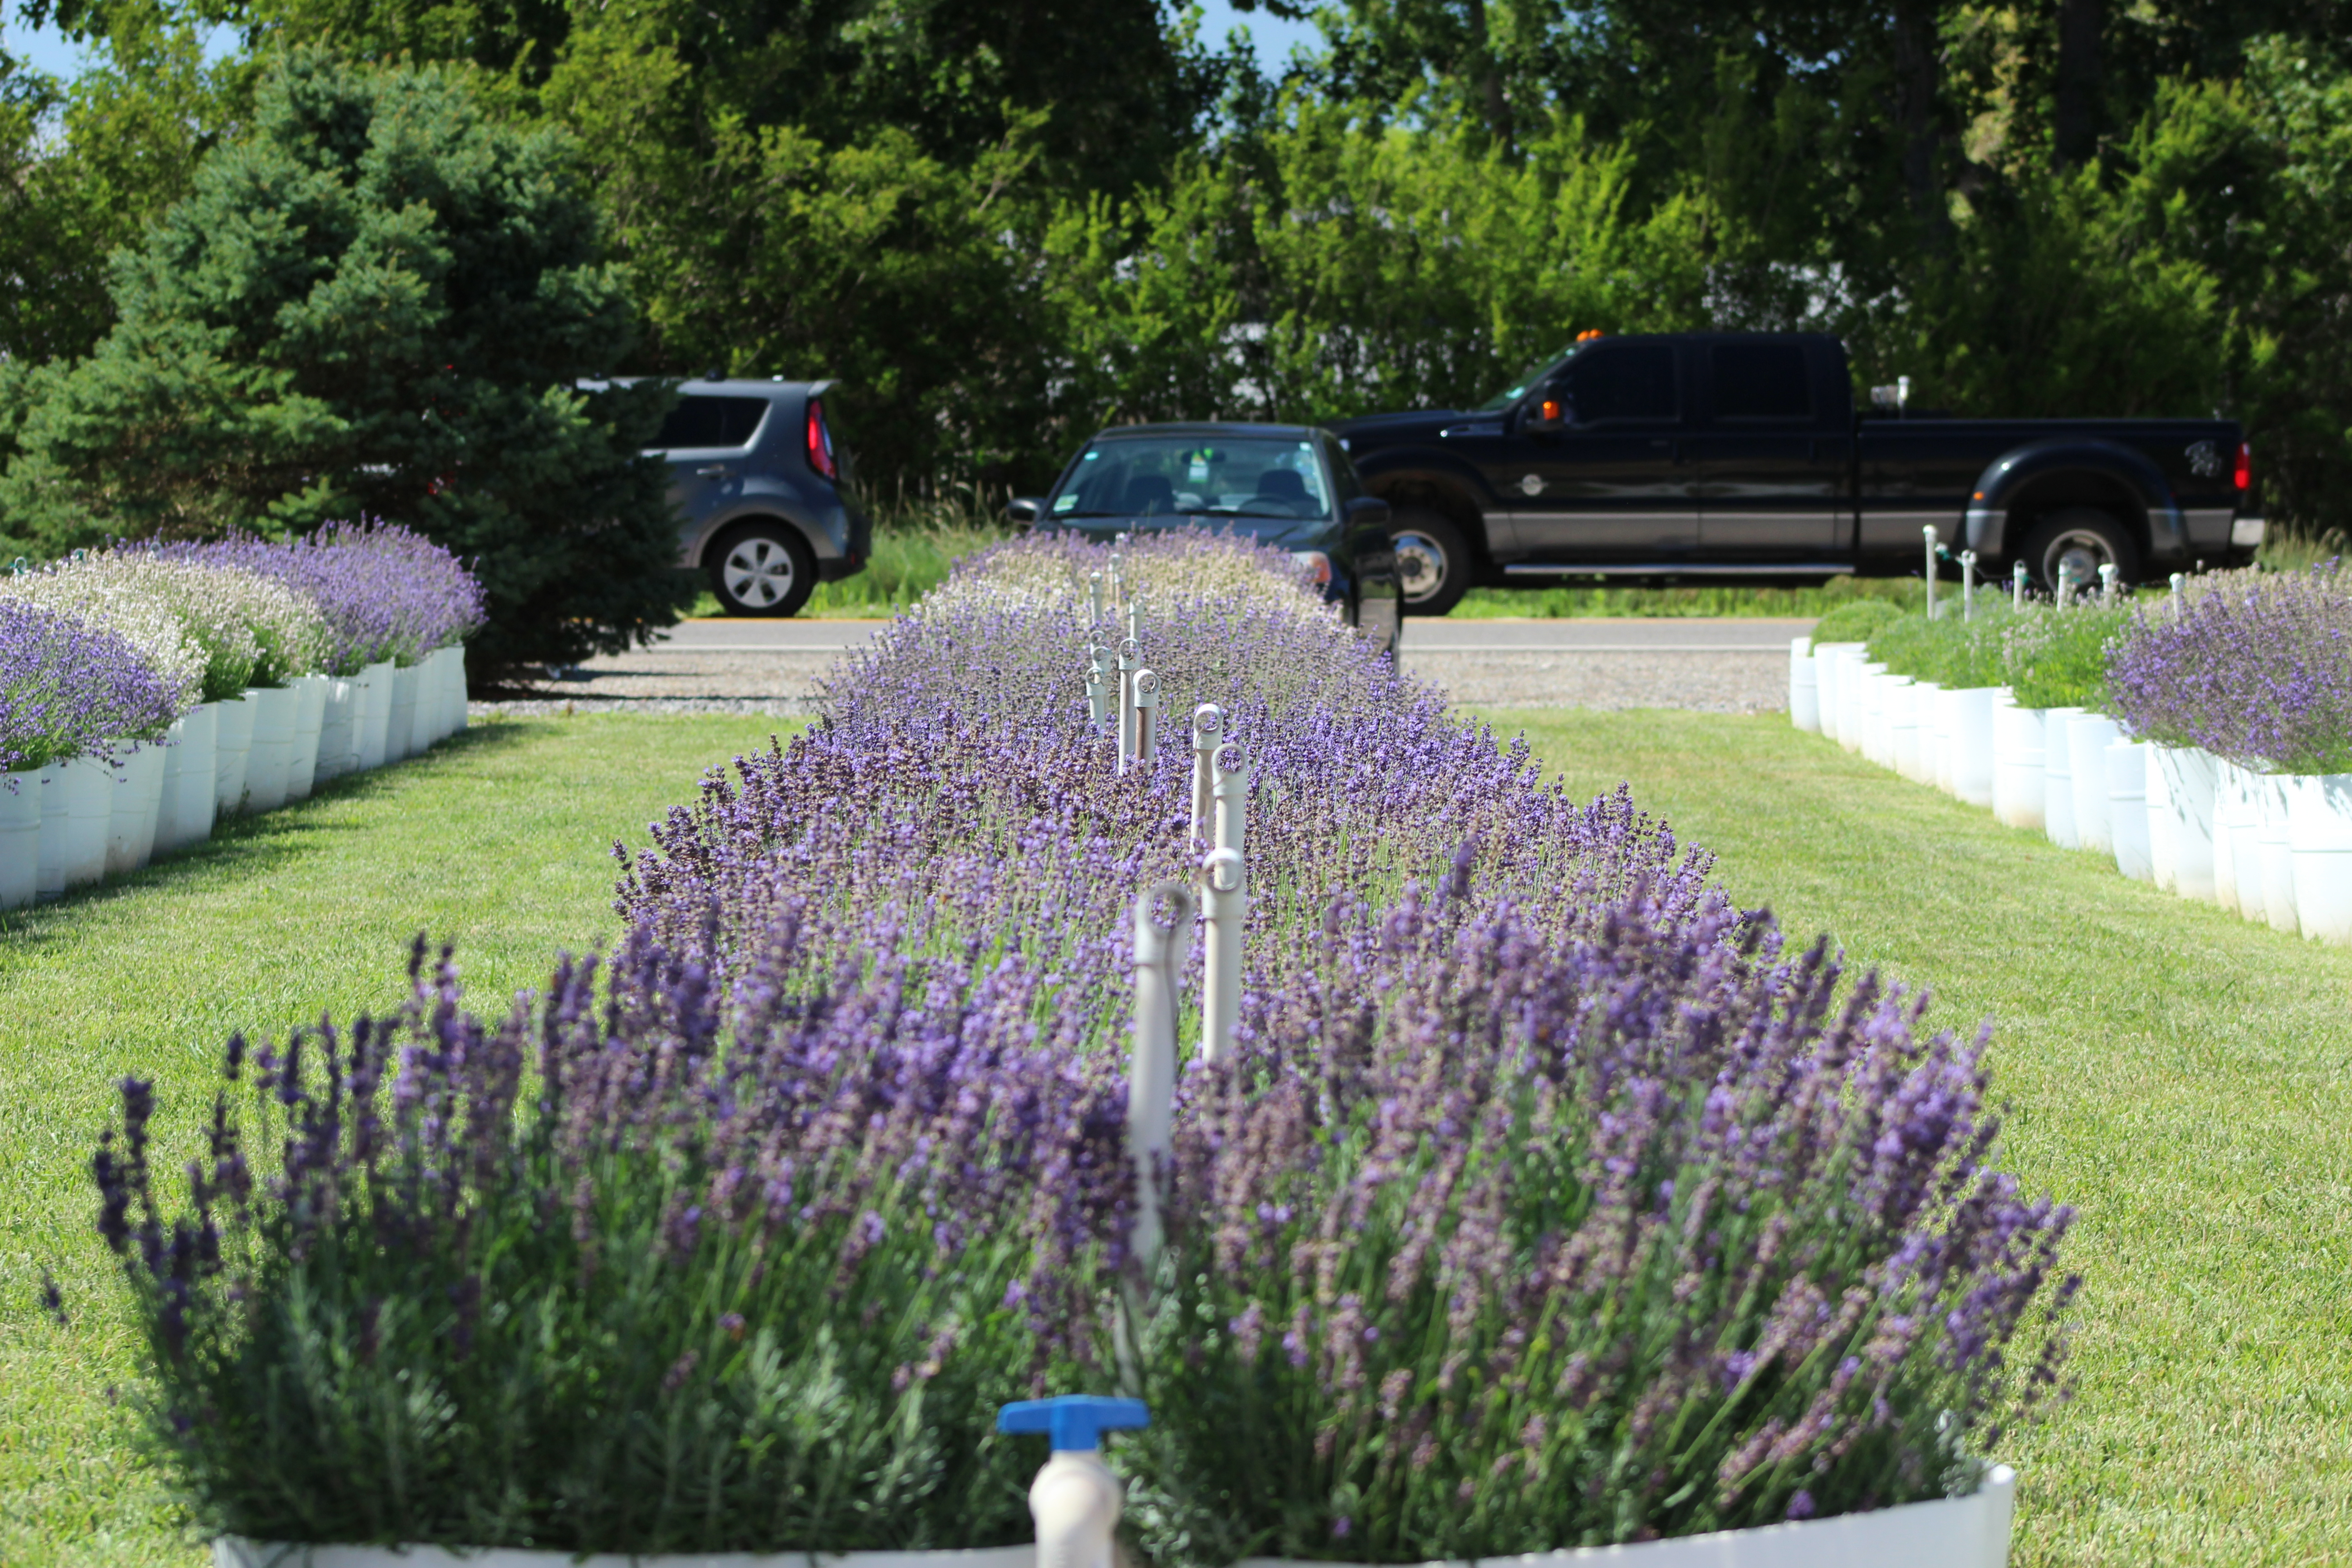 The white polls down the middle create the top of the tent when covering the lavender